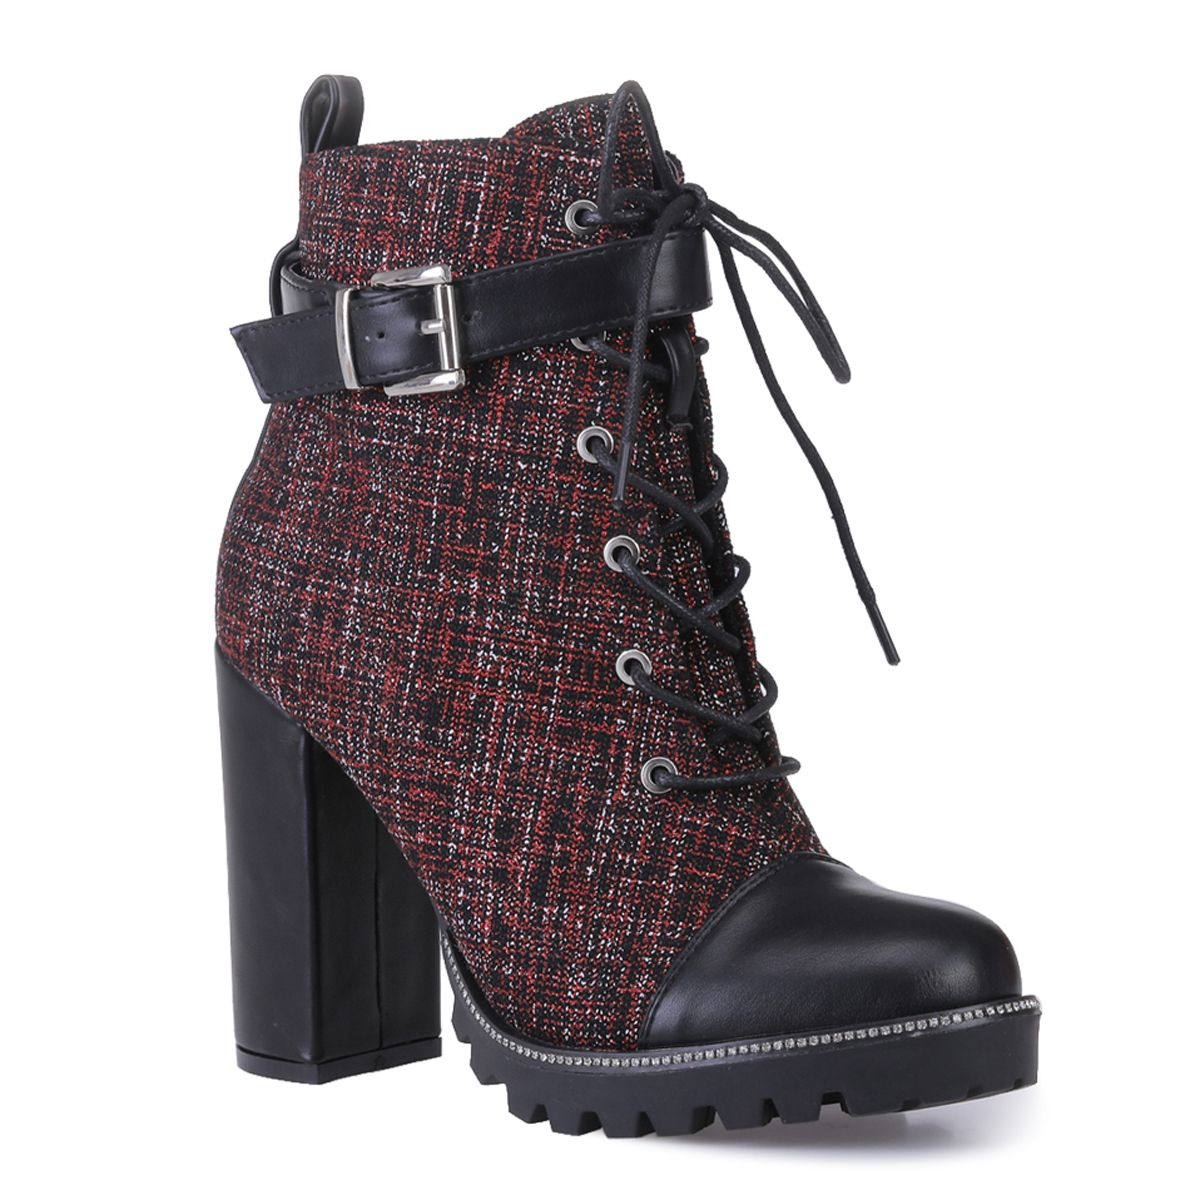 Bottines en tweed rouges à talon